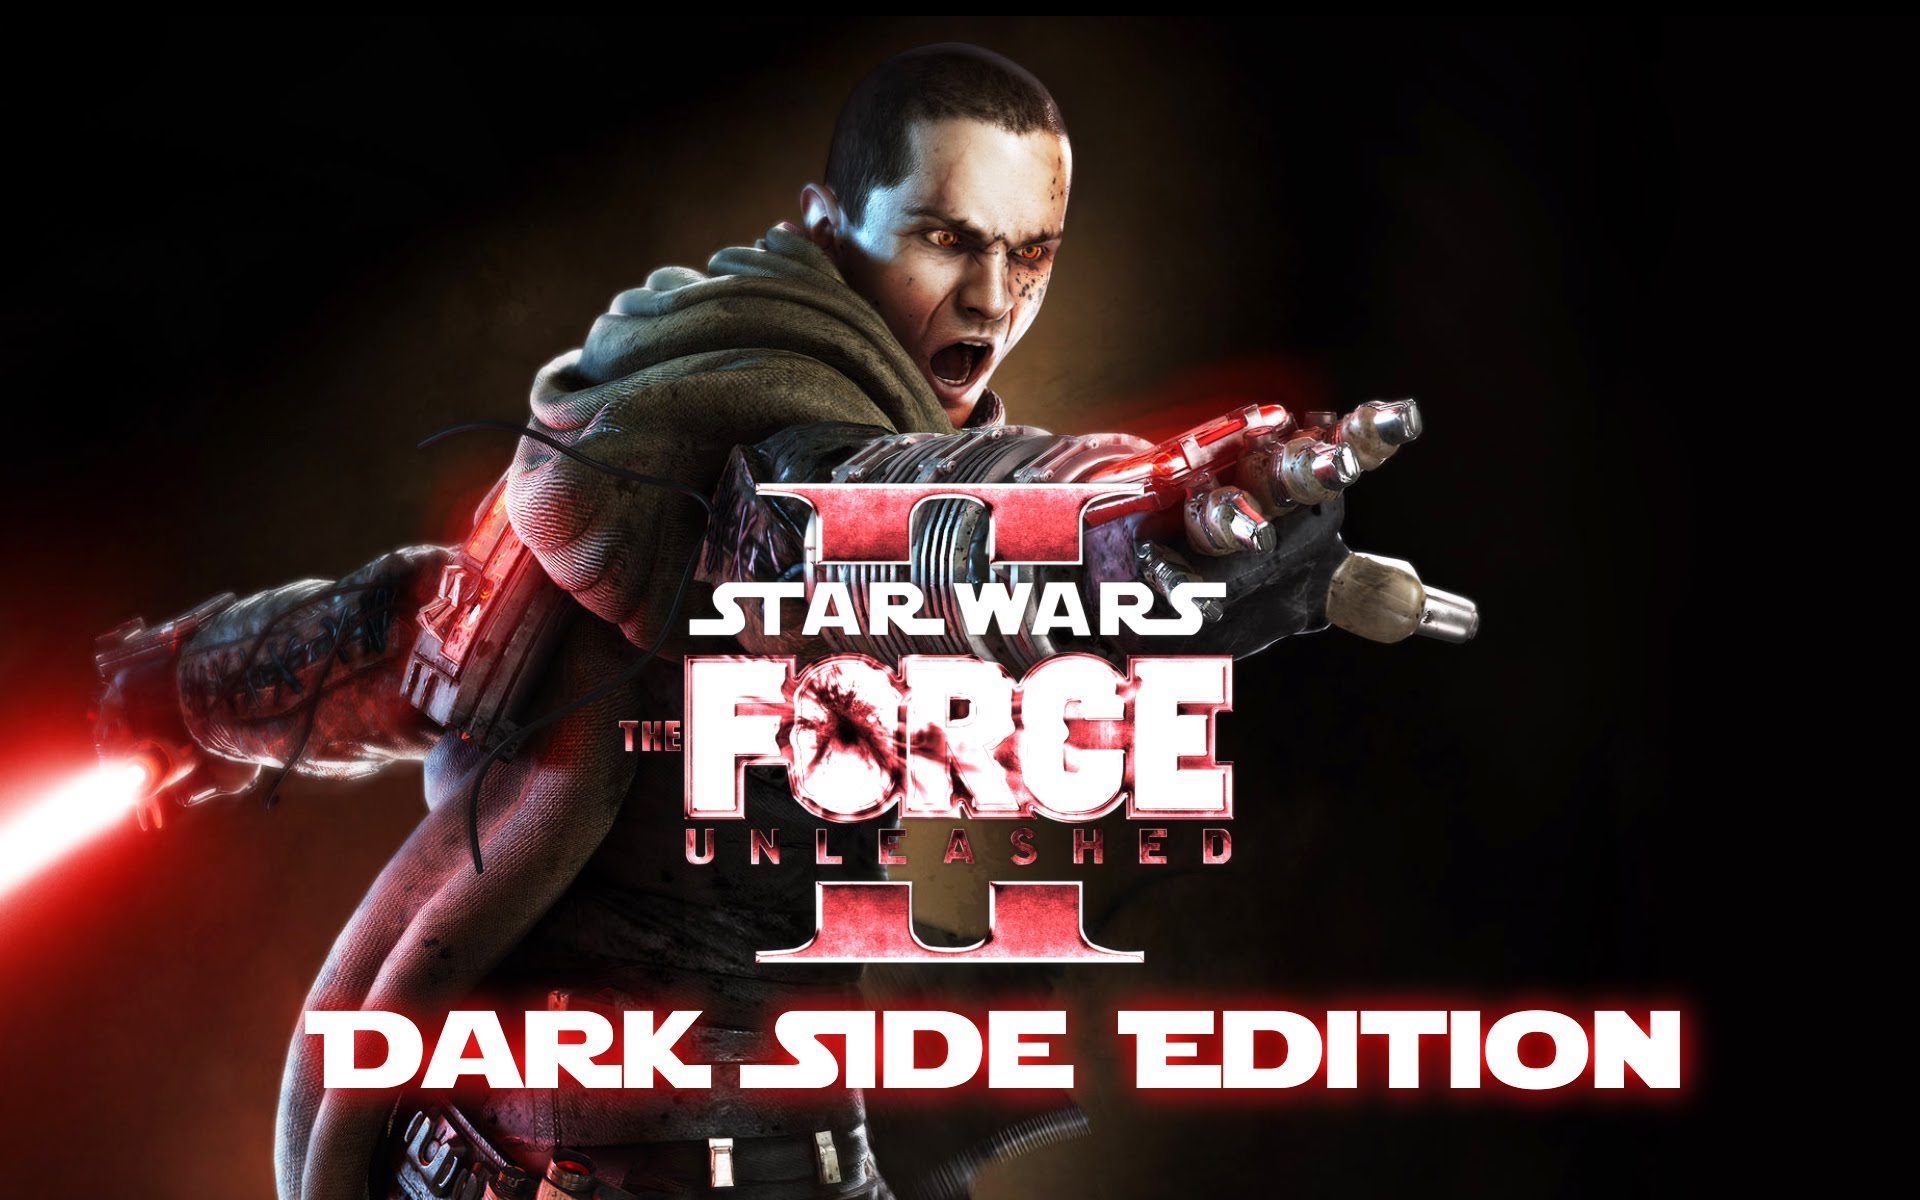 star wars: force unleashed 2 (dark side edition) game movie 1080p (+